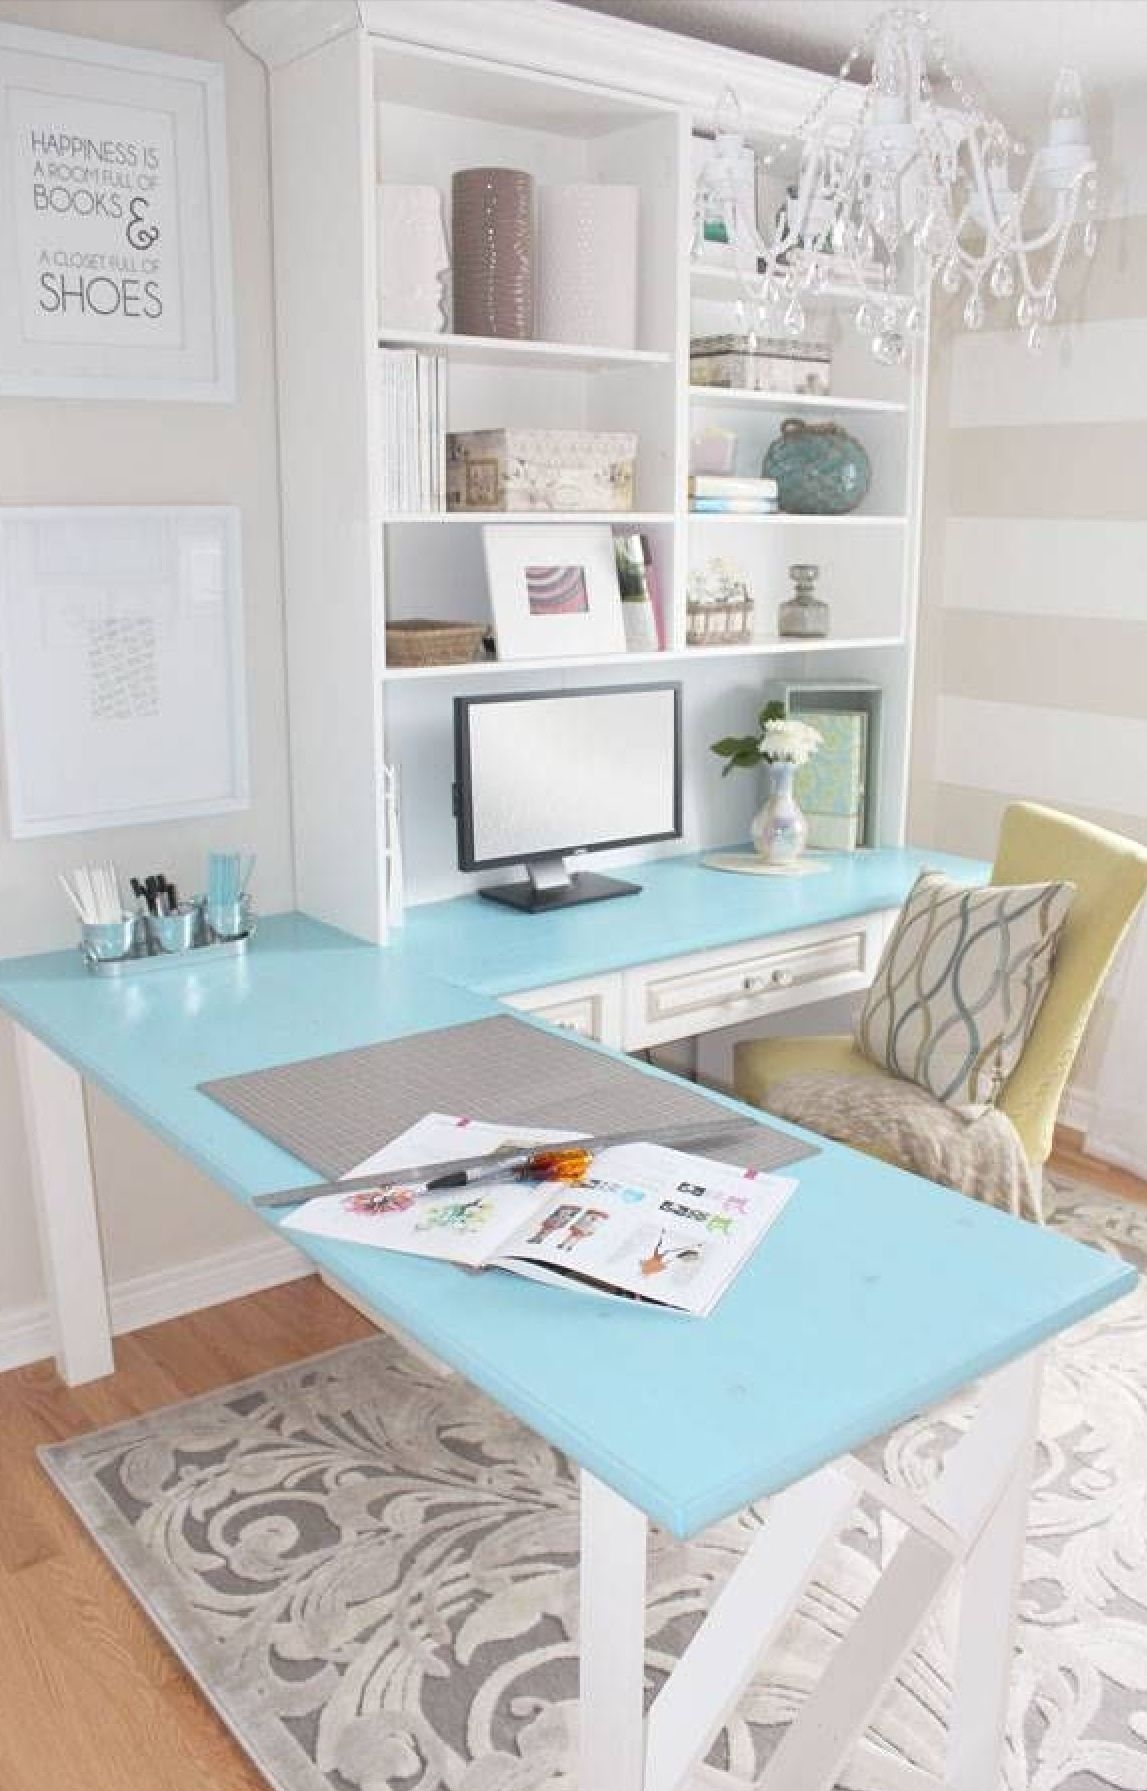 Get Back to Work with These 50 Great Home Office Ideas | Spaces ...